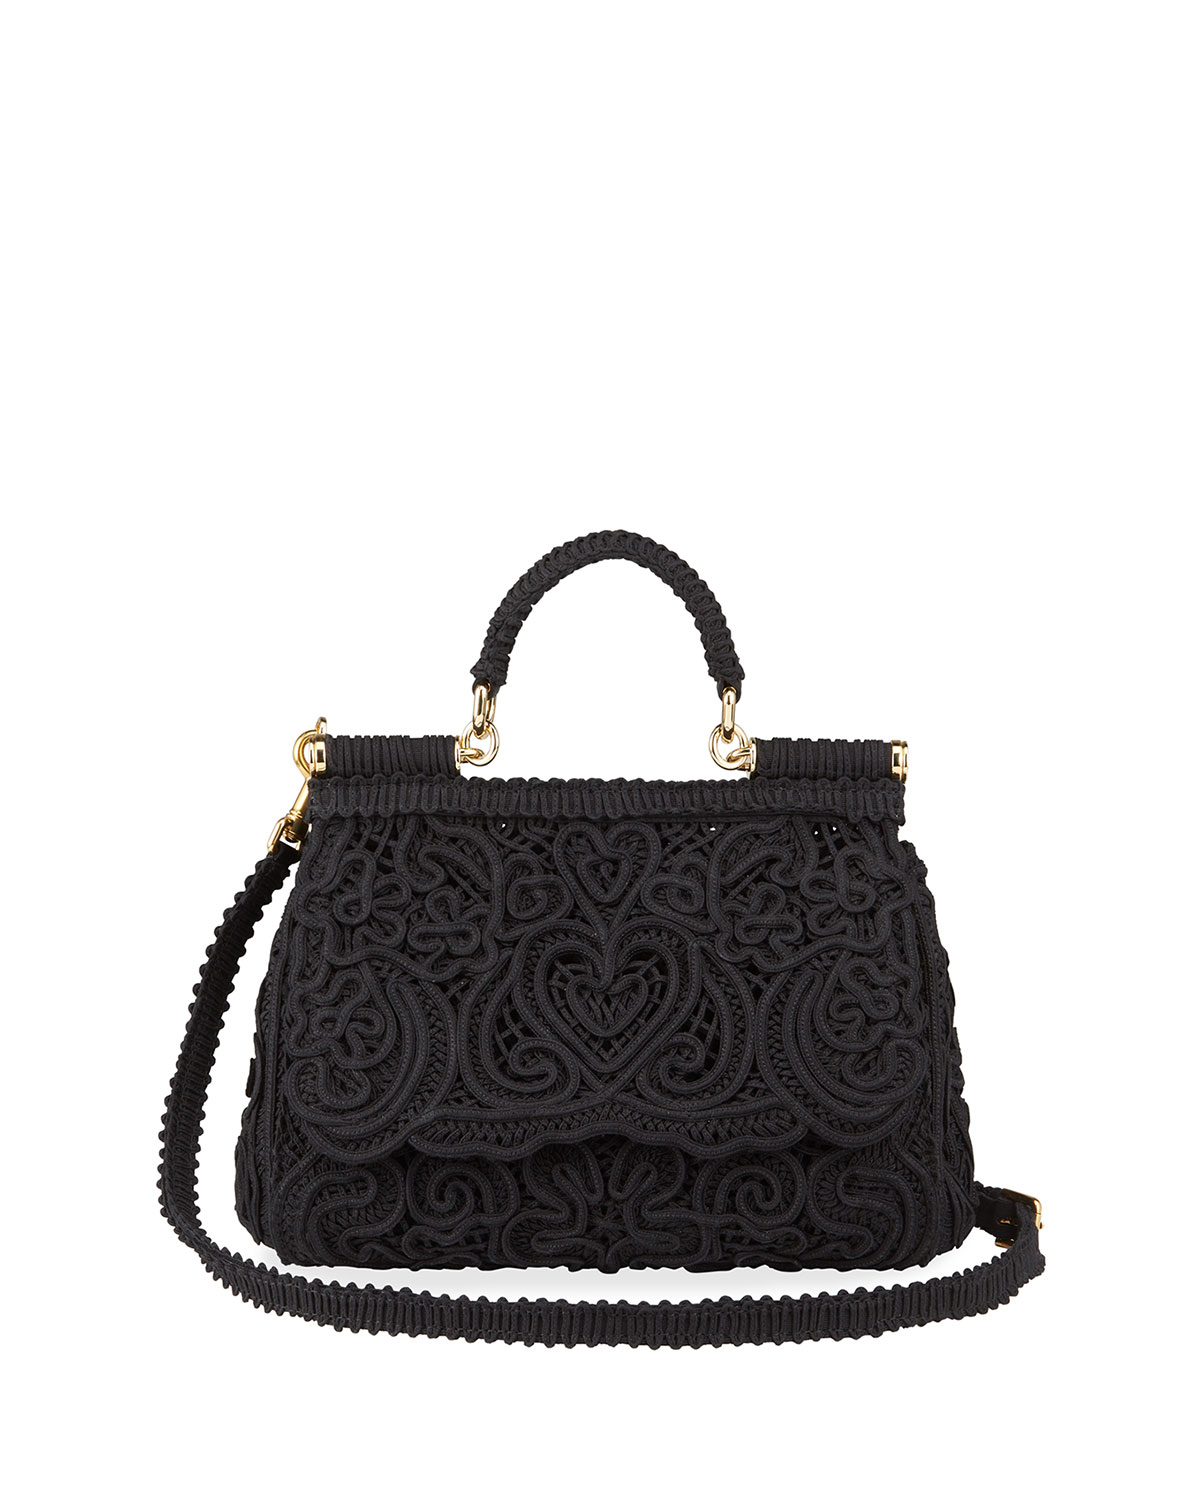 Dolce & Gabbana MISS SICILY MEDIUM LACE SATCHEL BAG